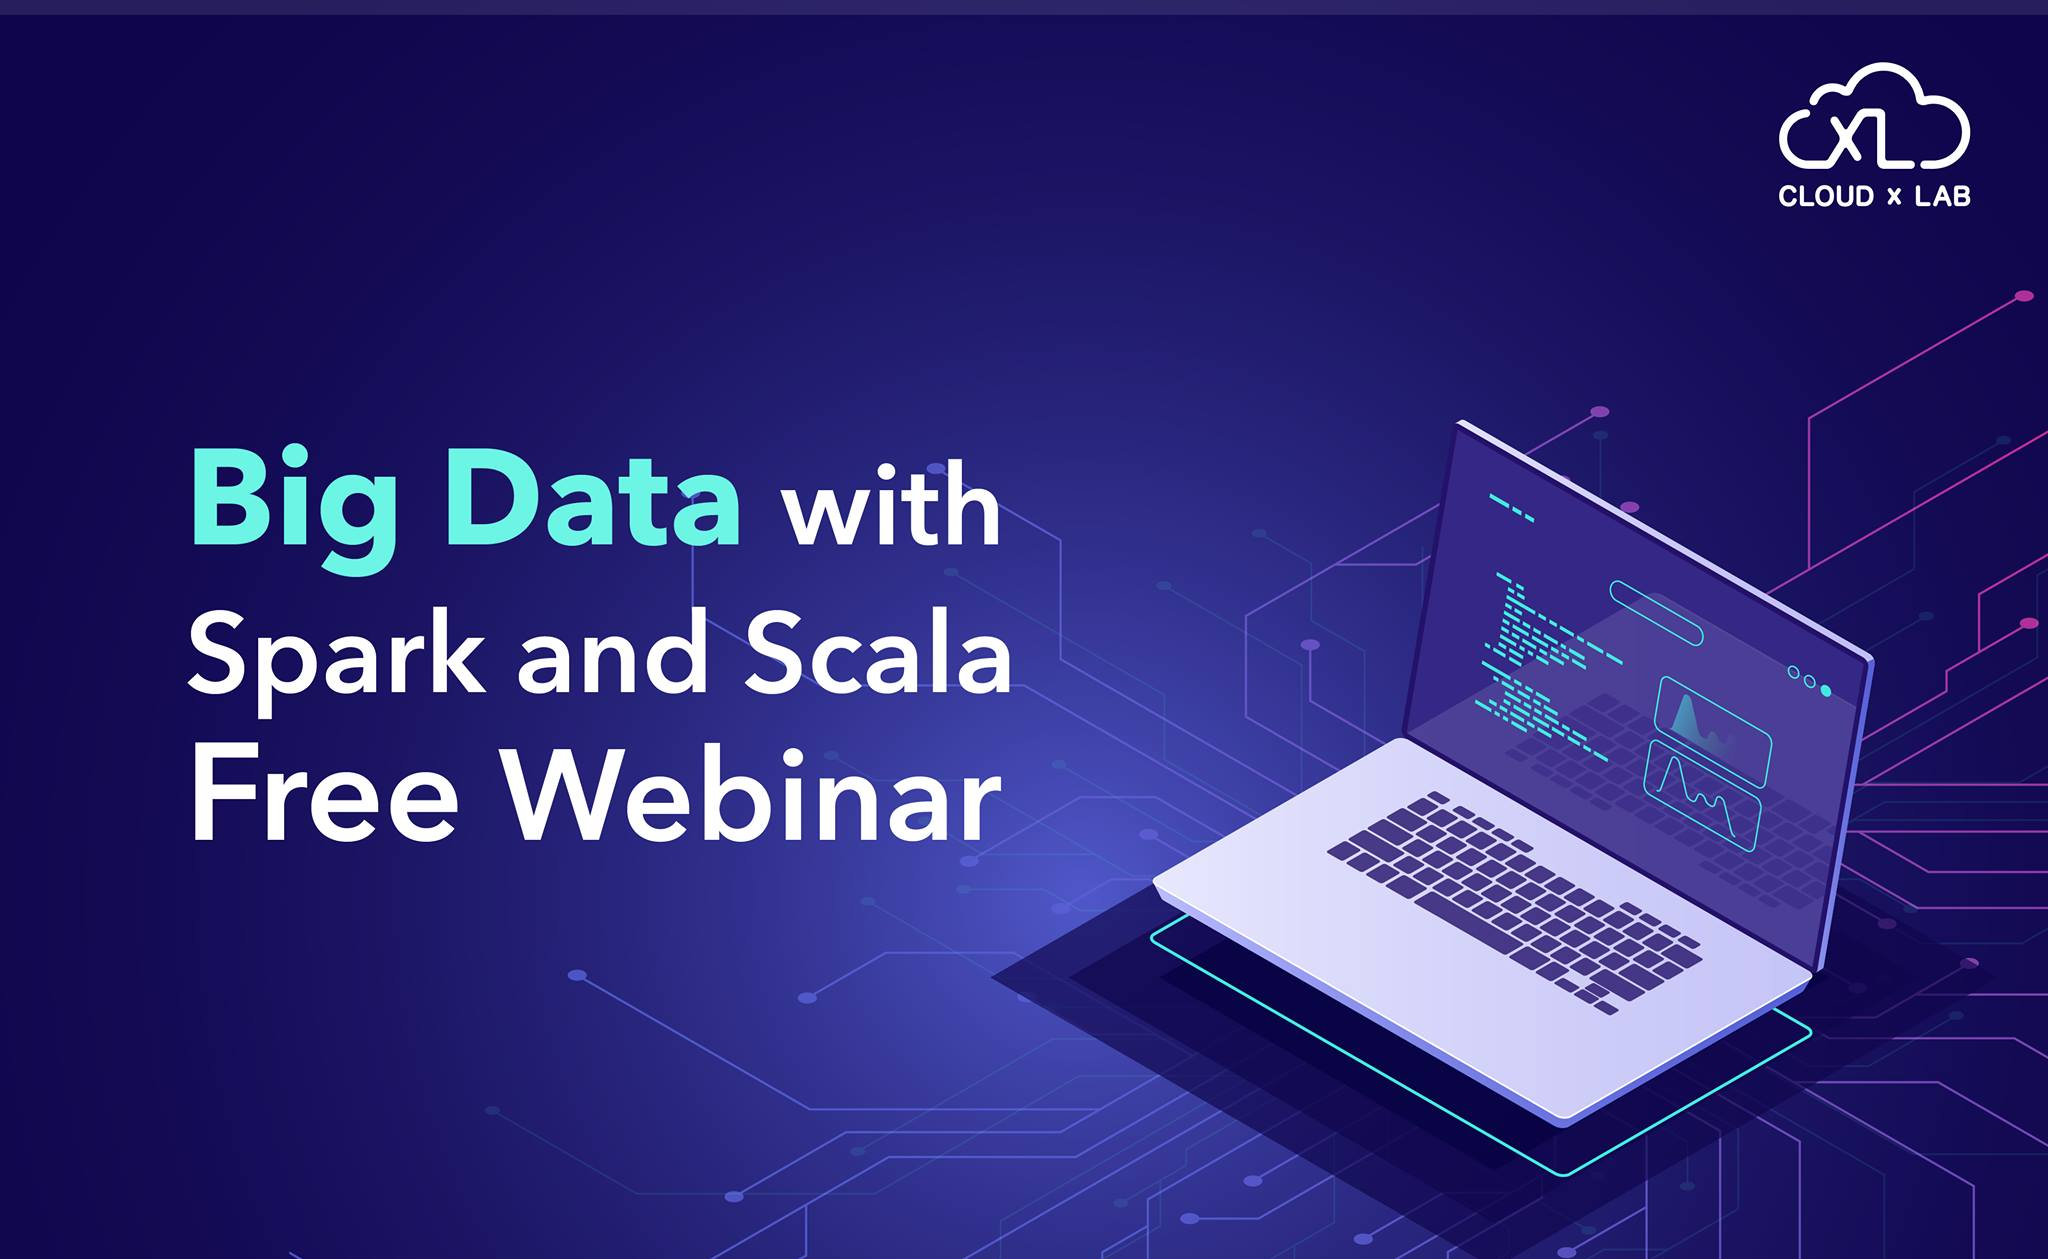 Free Webinar on Introduction to Big Data with Spark & Scala